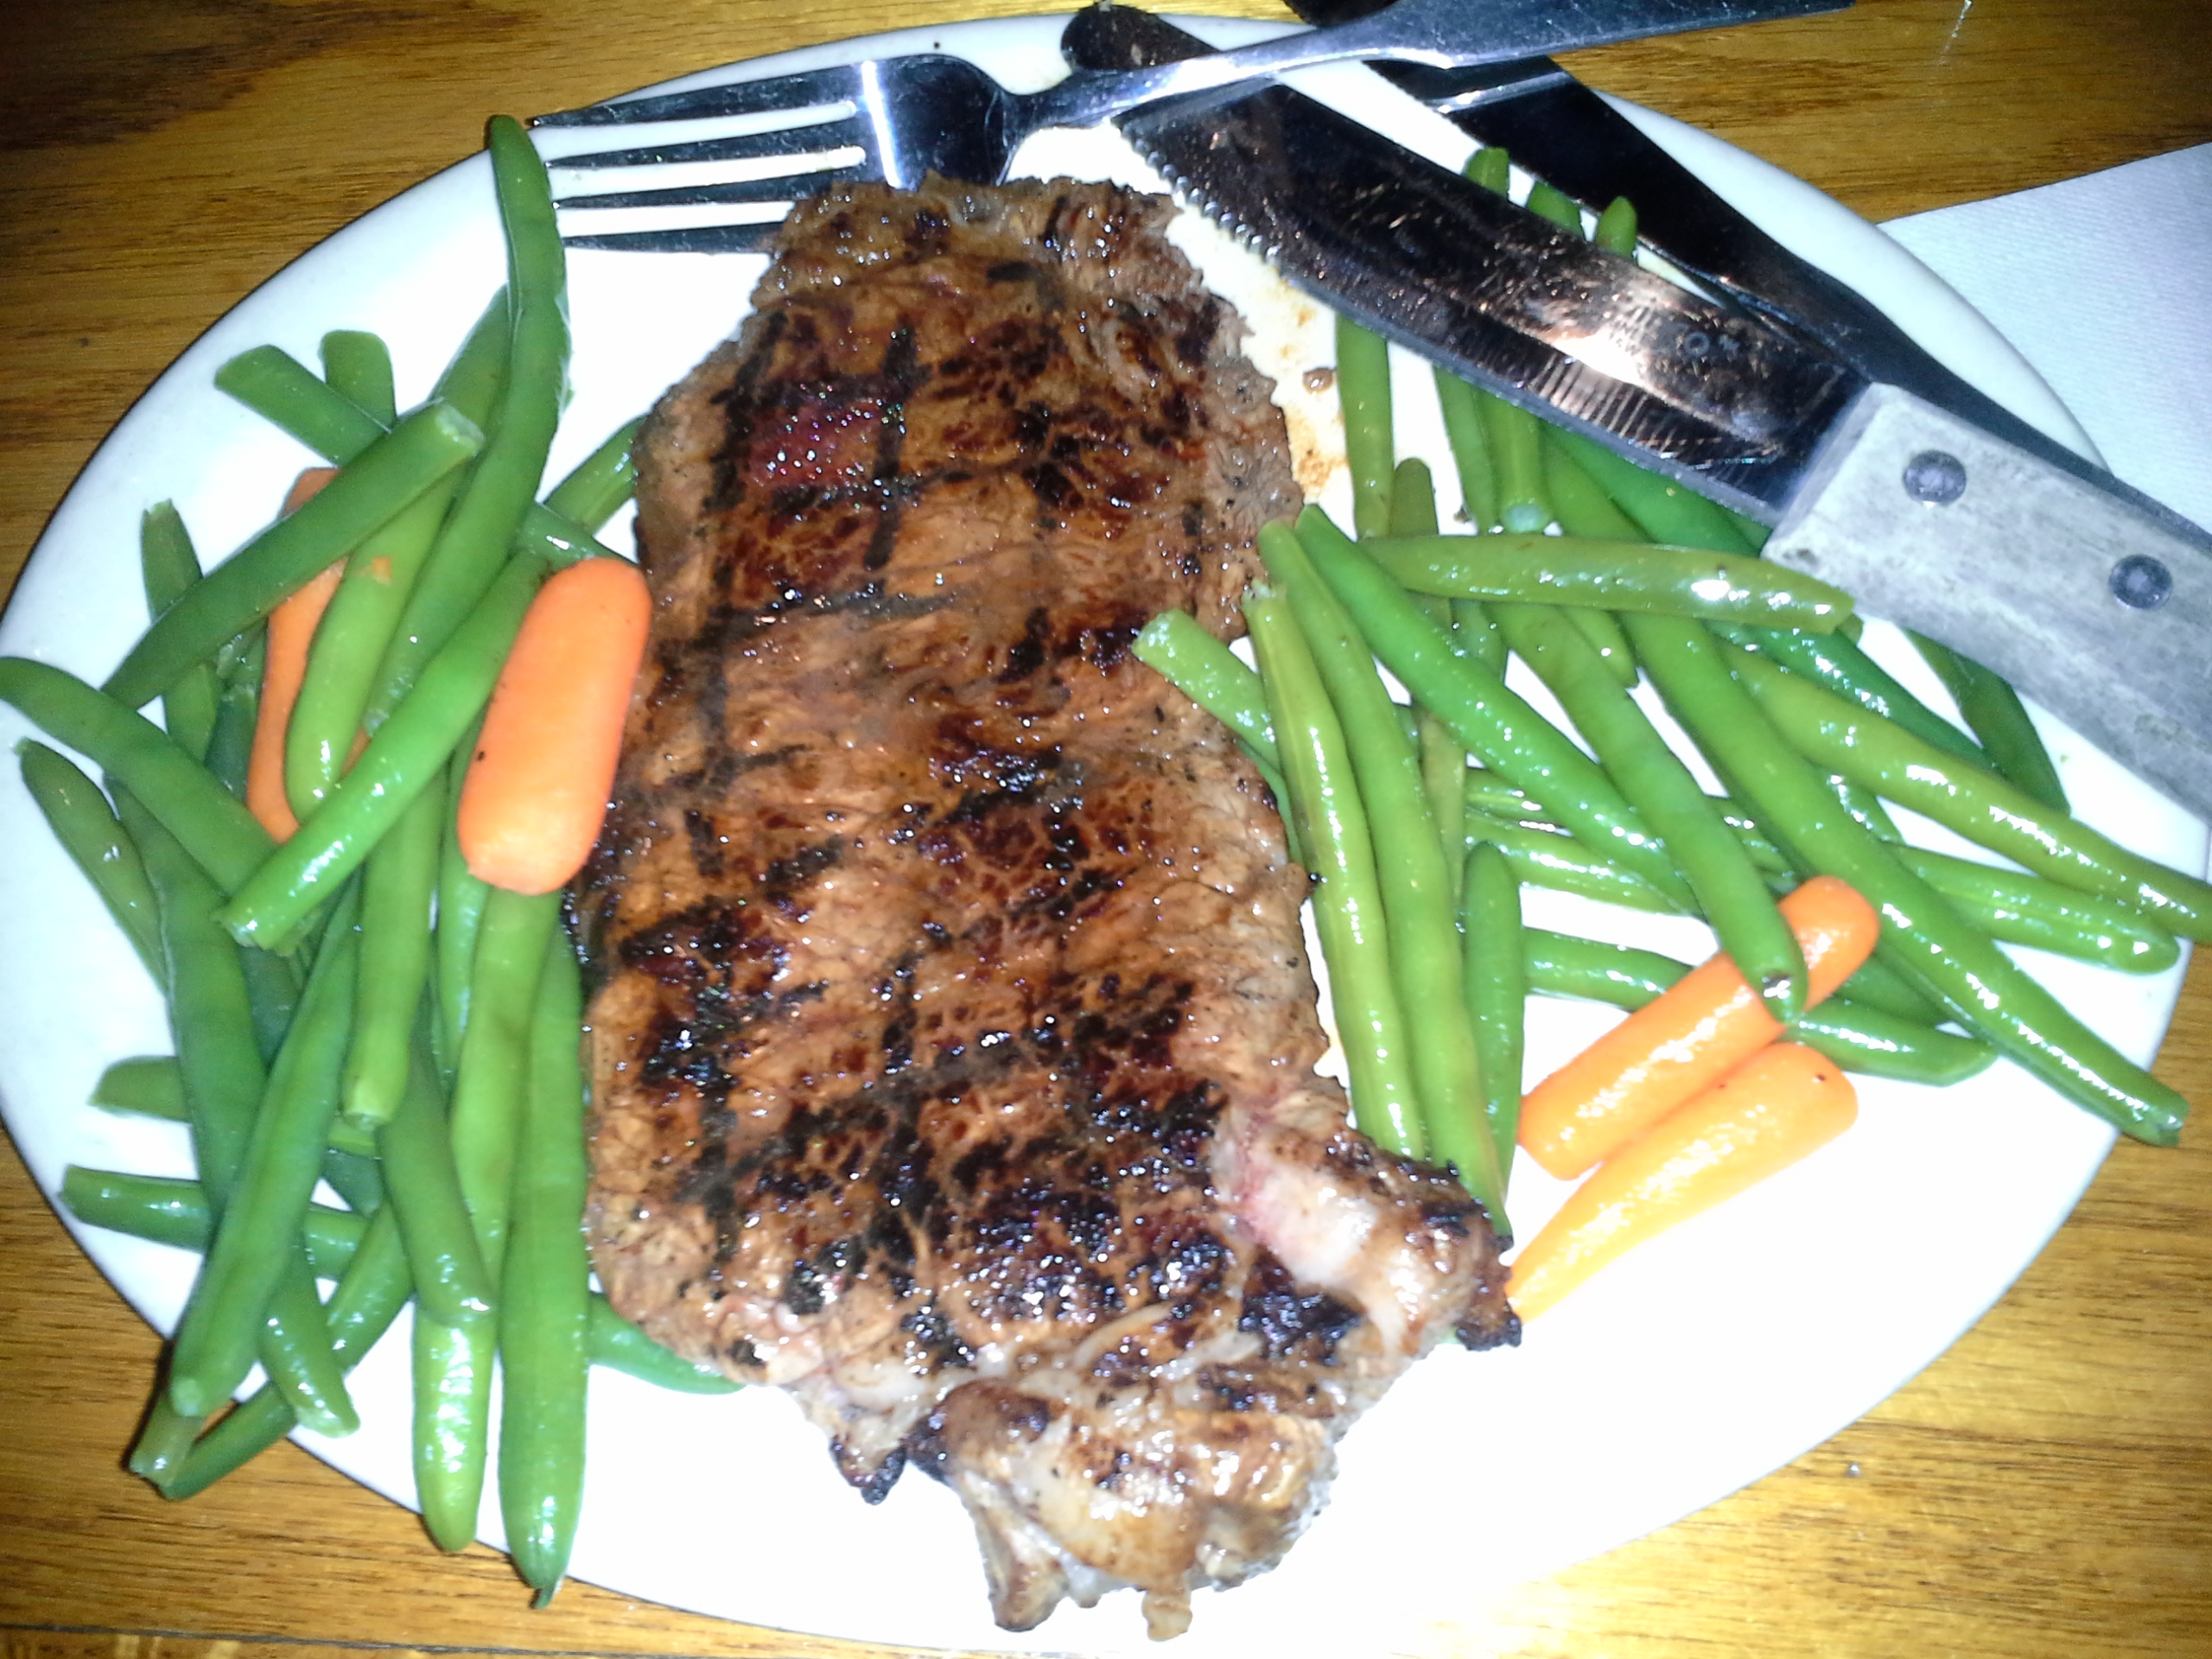 Dinner: 8:10 p.m. | 10 oz. steak, green beans, carrots